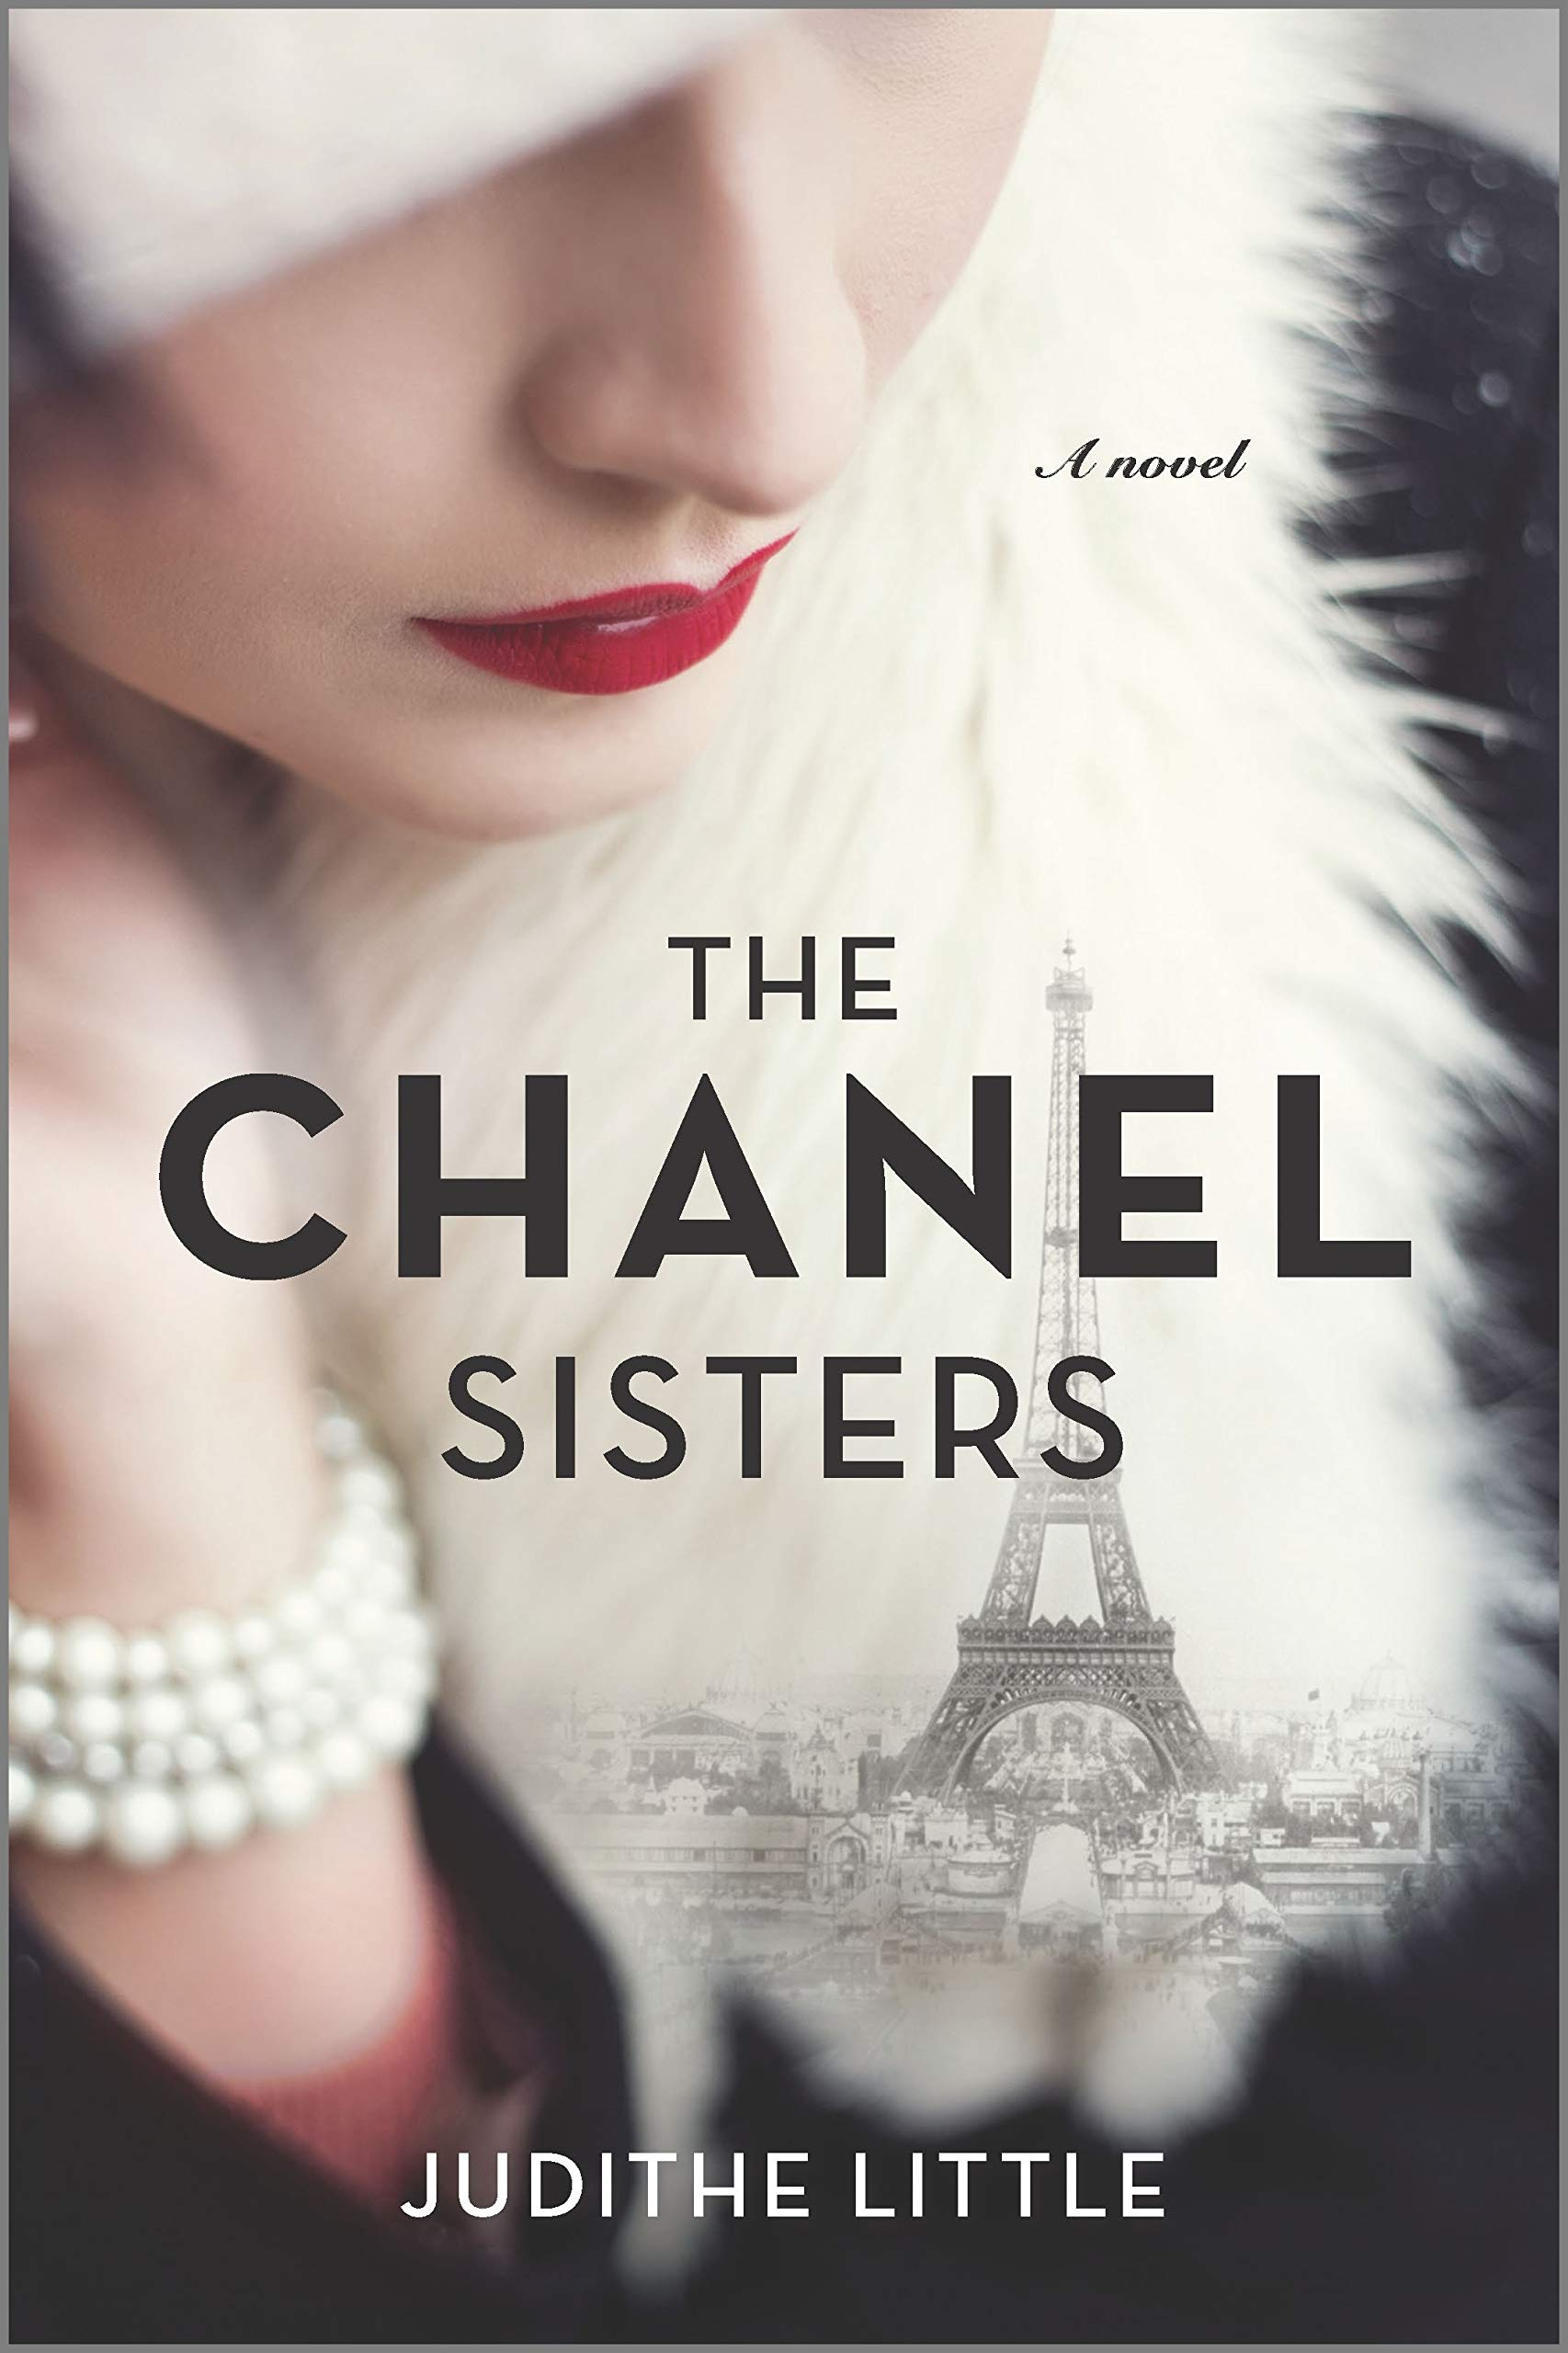 The Chanel Sisters Judithe Little PDF Free Download